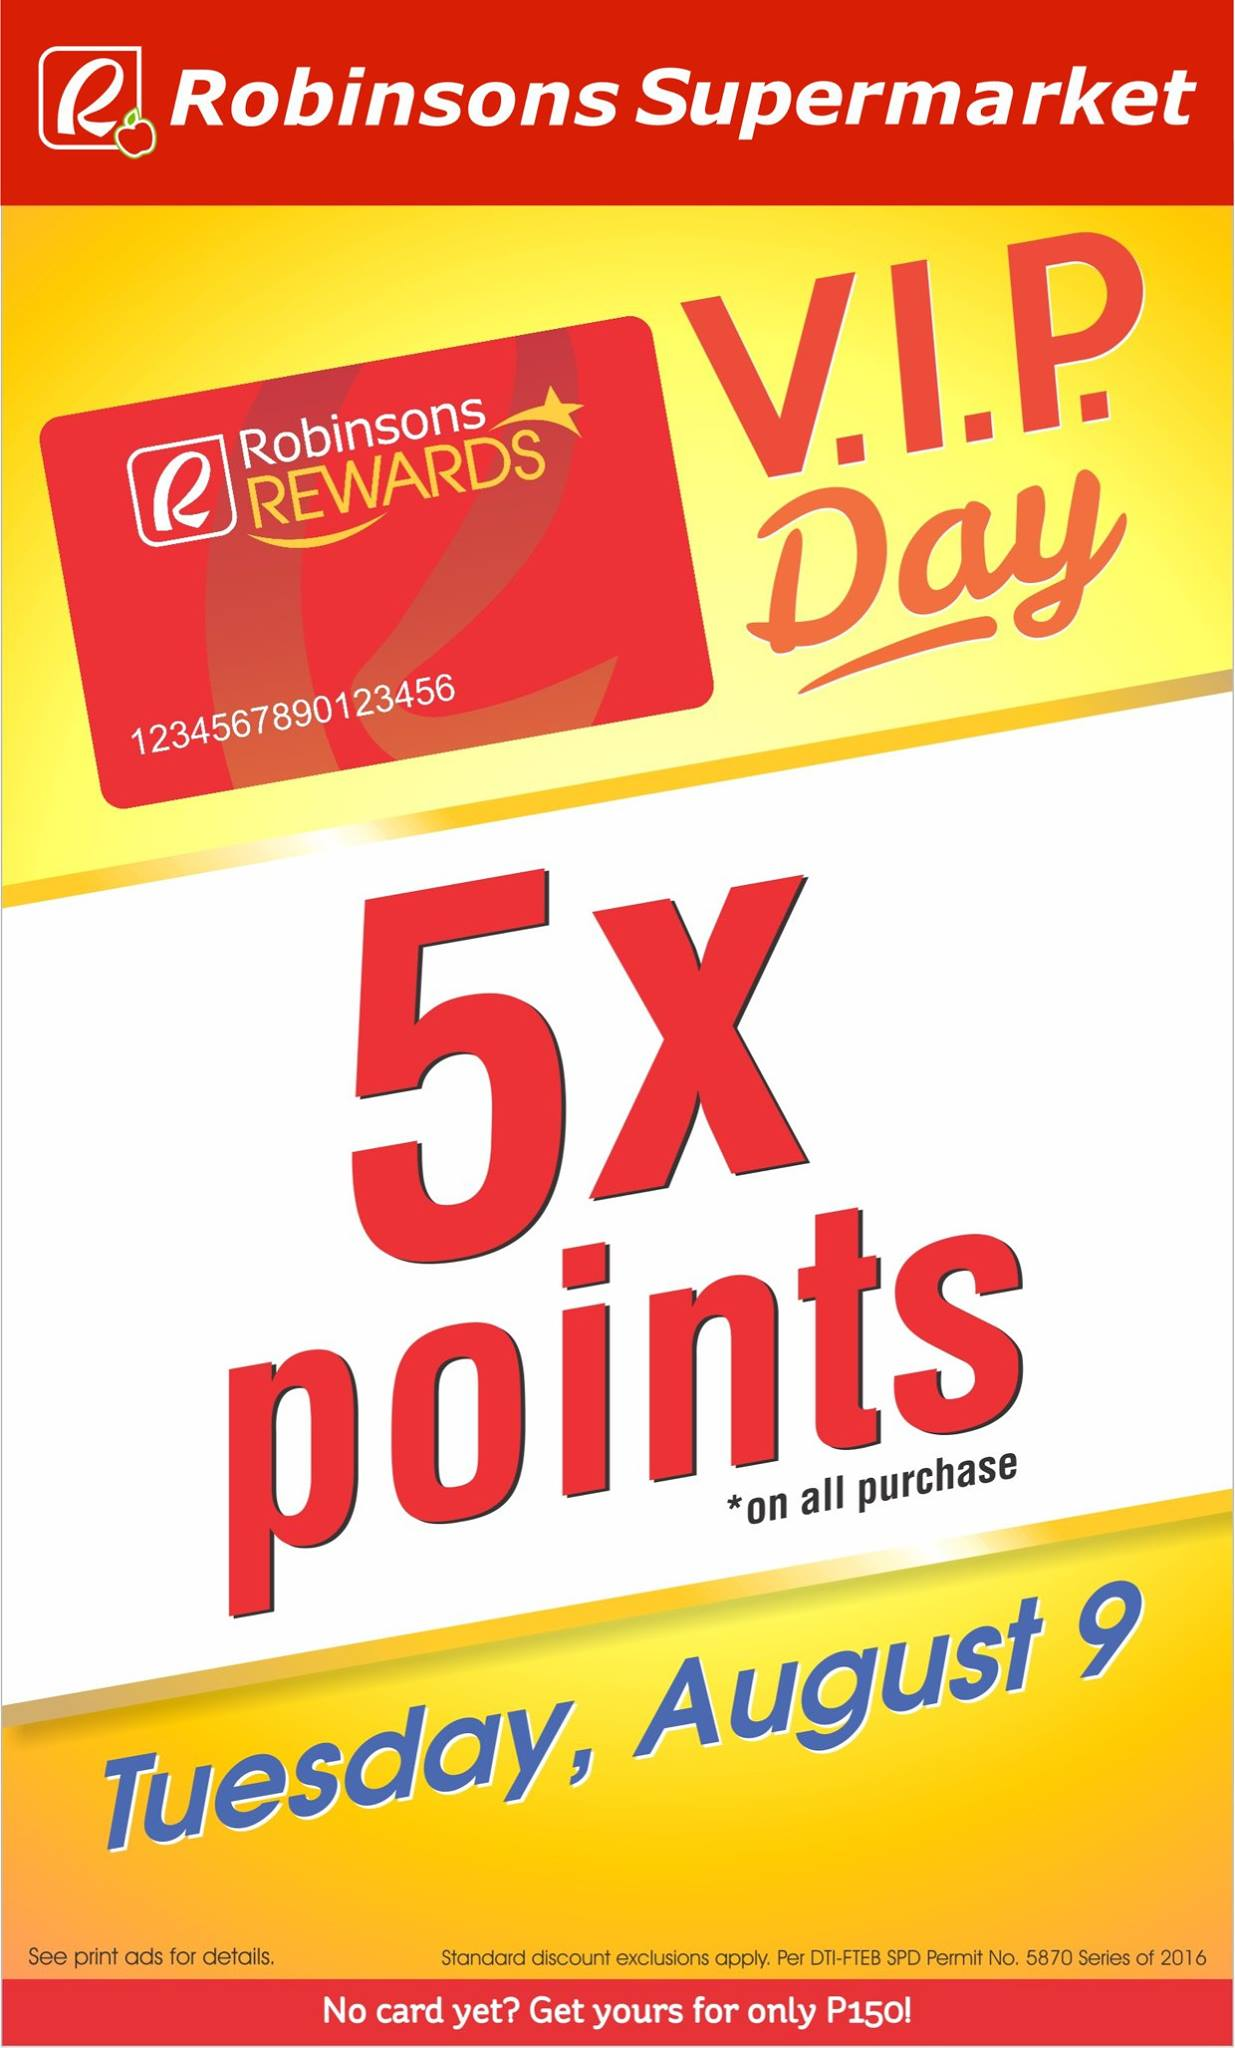 Robinsons Reward 5x points